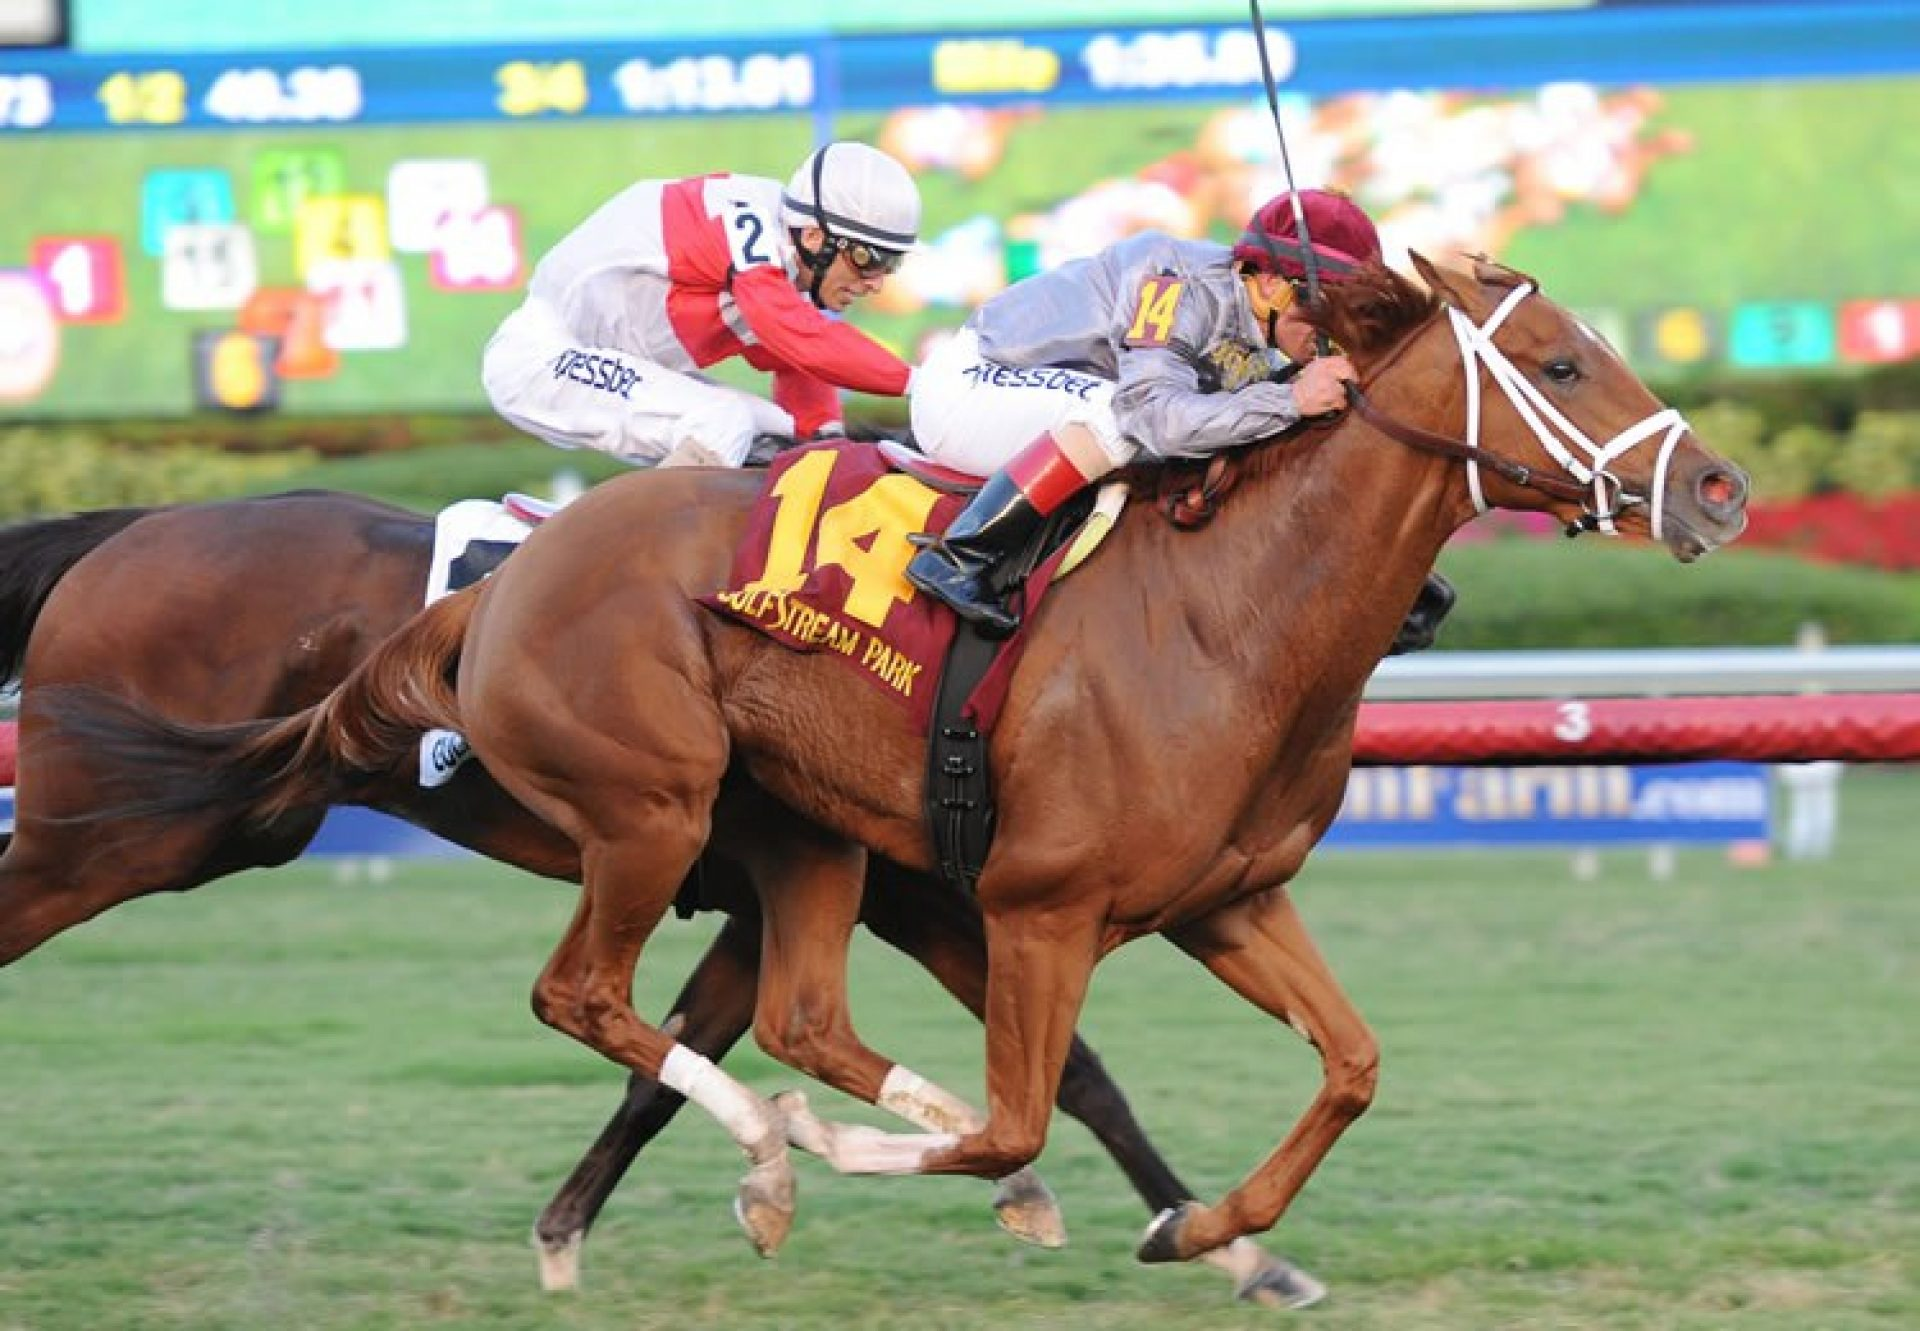 Sandiva (Footstepsinthesand) winning the Tropical Park Oaks at Gulfstream Park